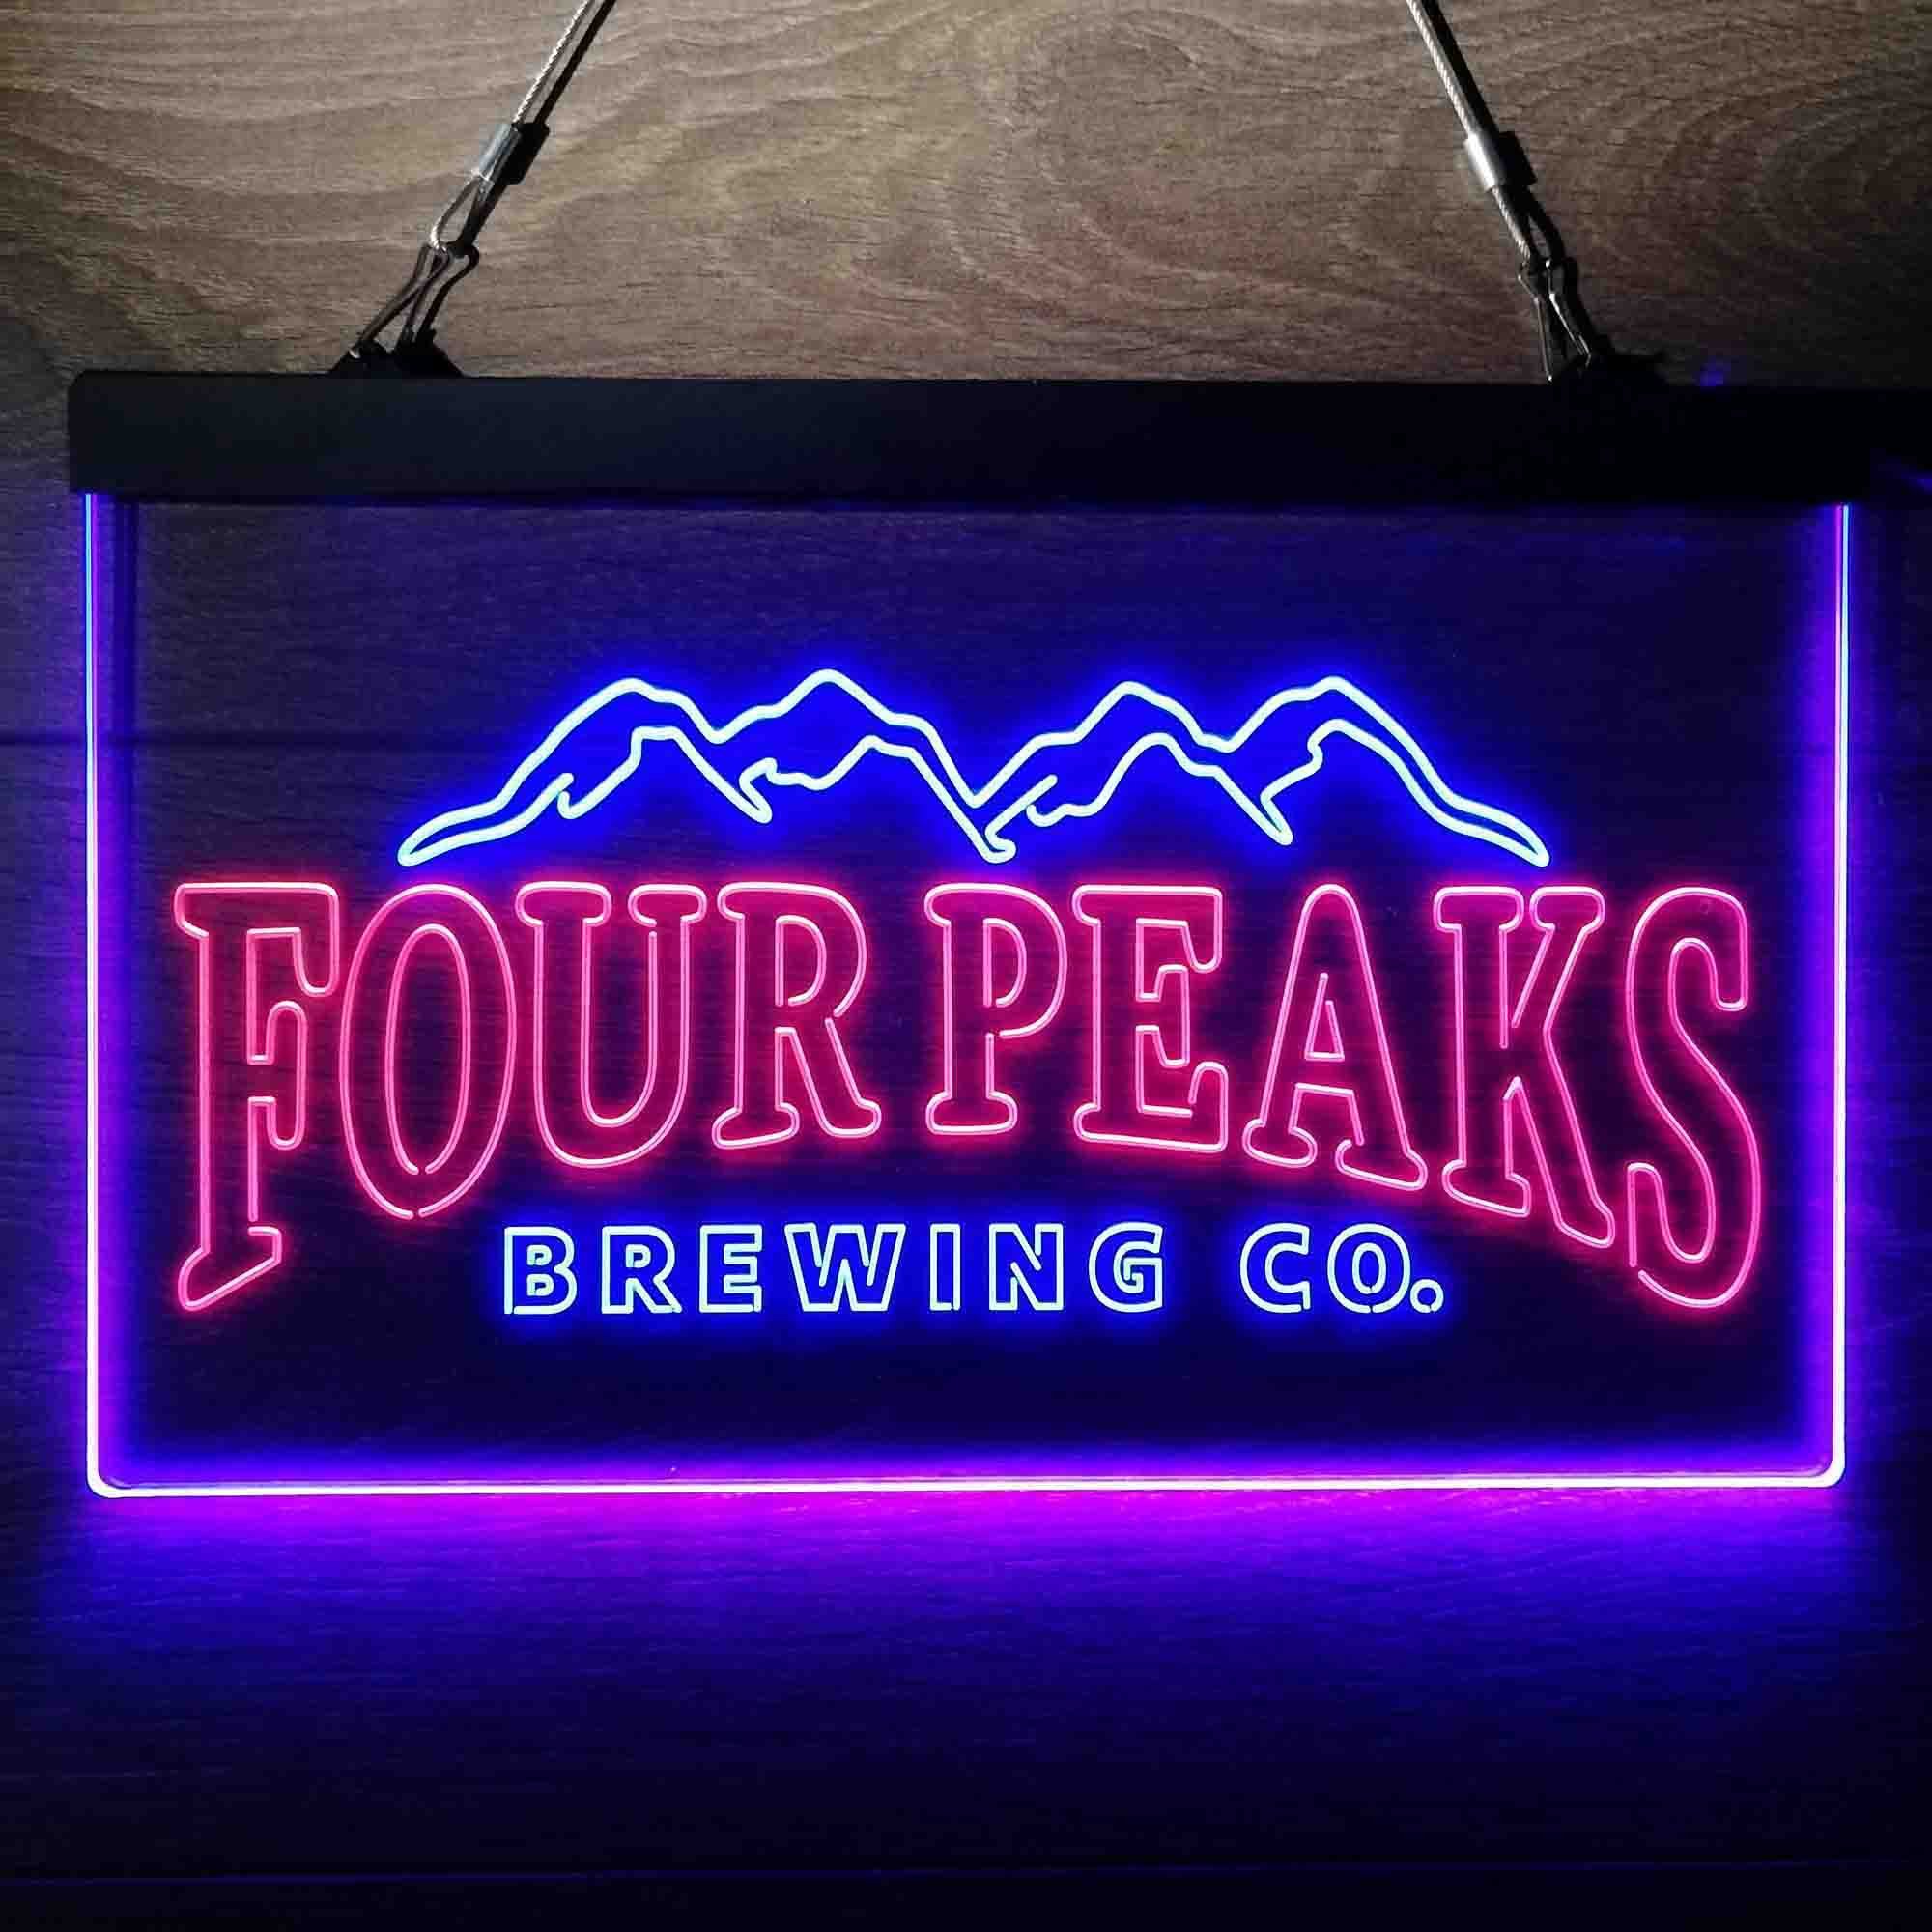 Four Peaks Brewing Co. Neon-Like LED Sign